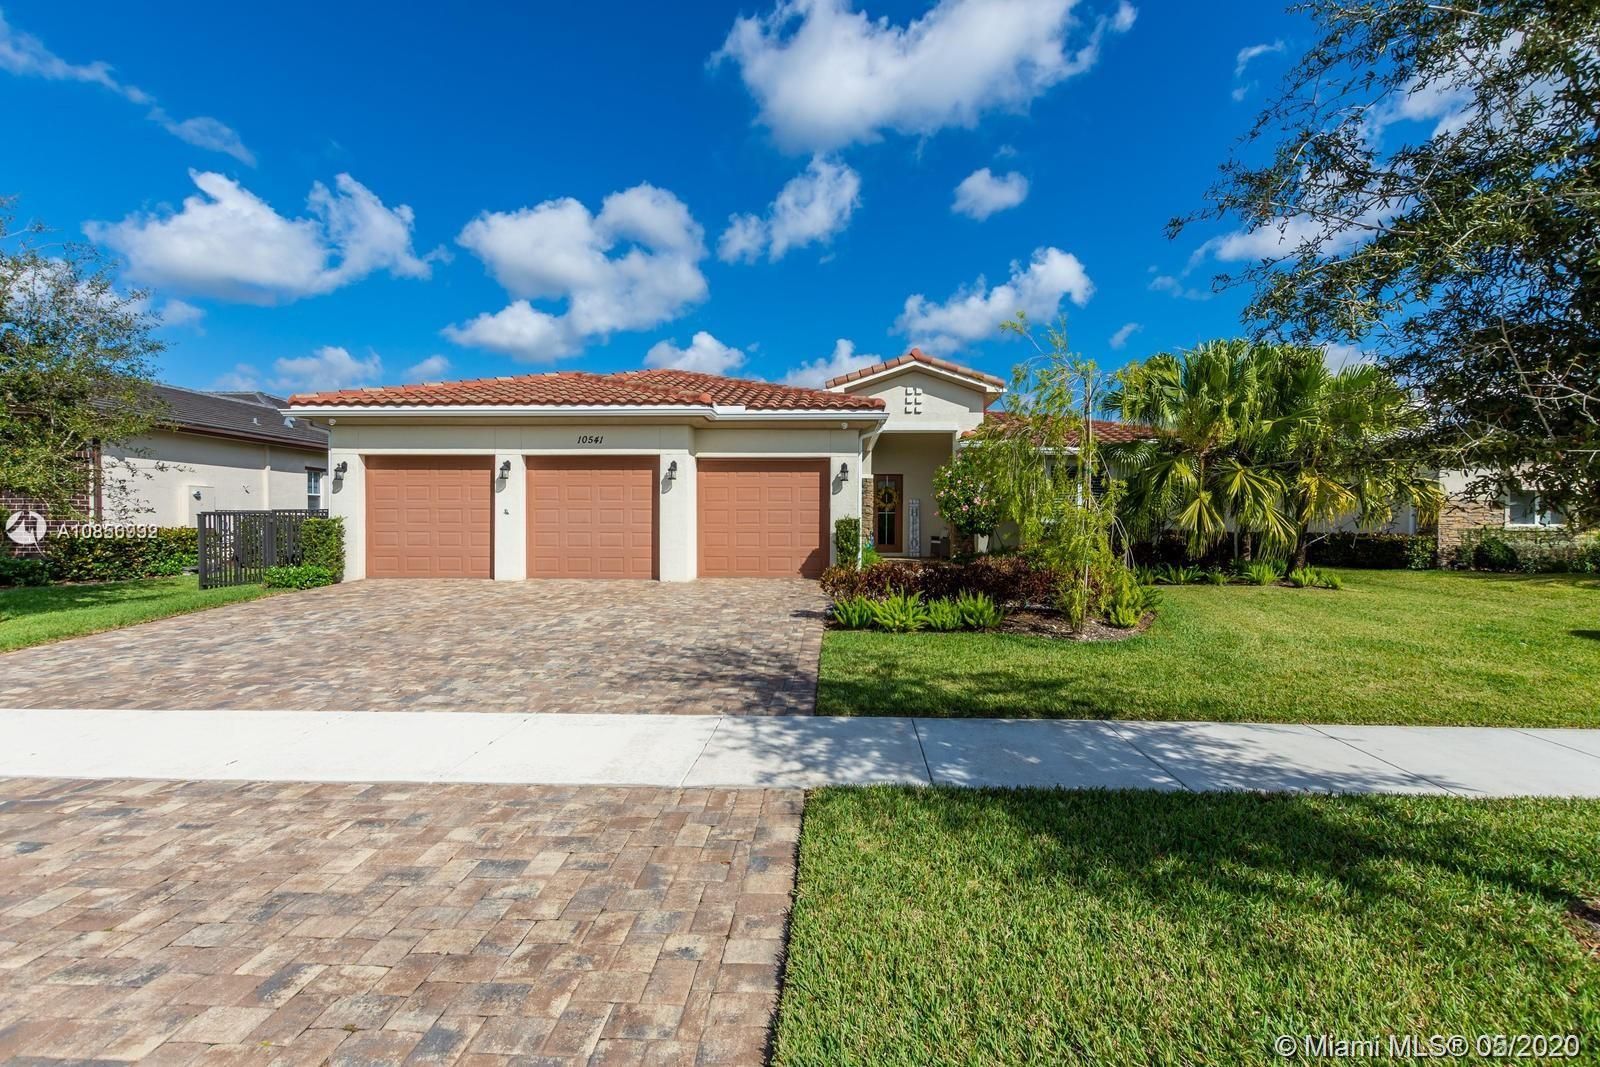 10541 Marin Ranches Dr, Cooper City, Florida